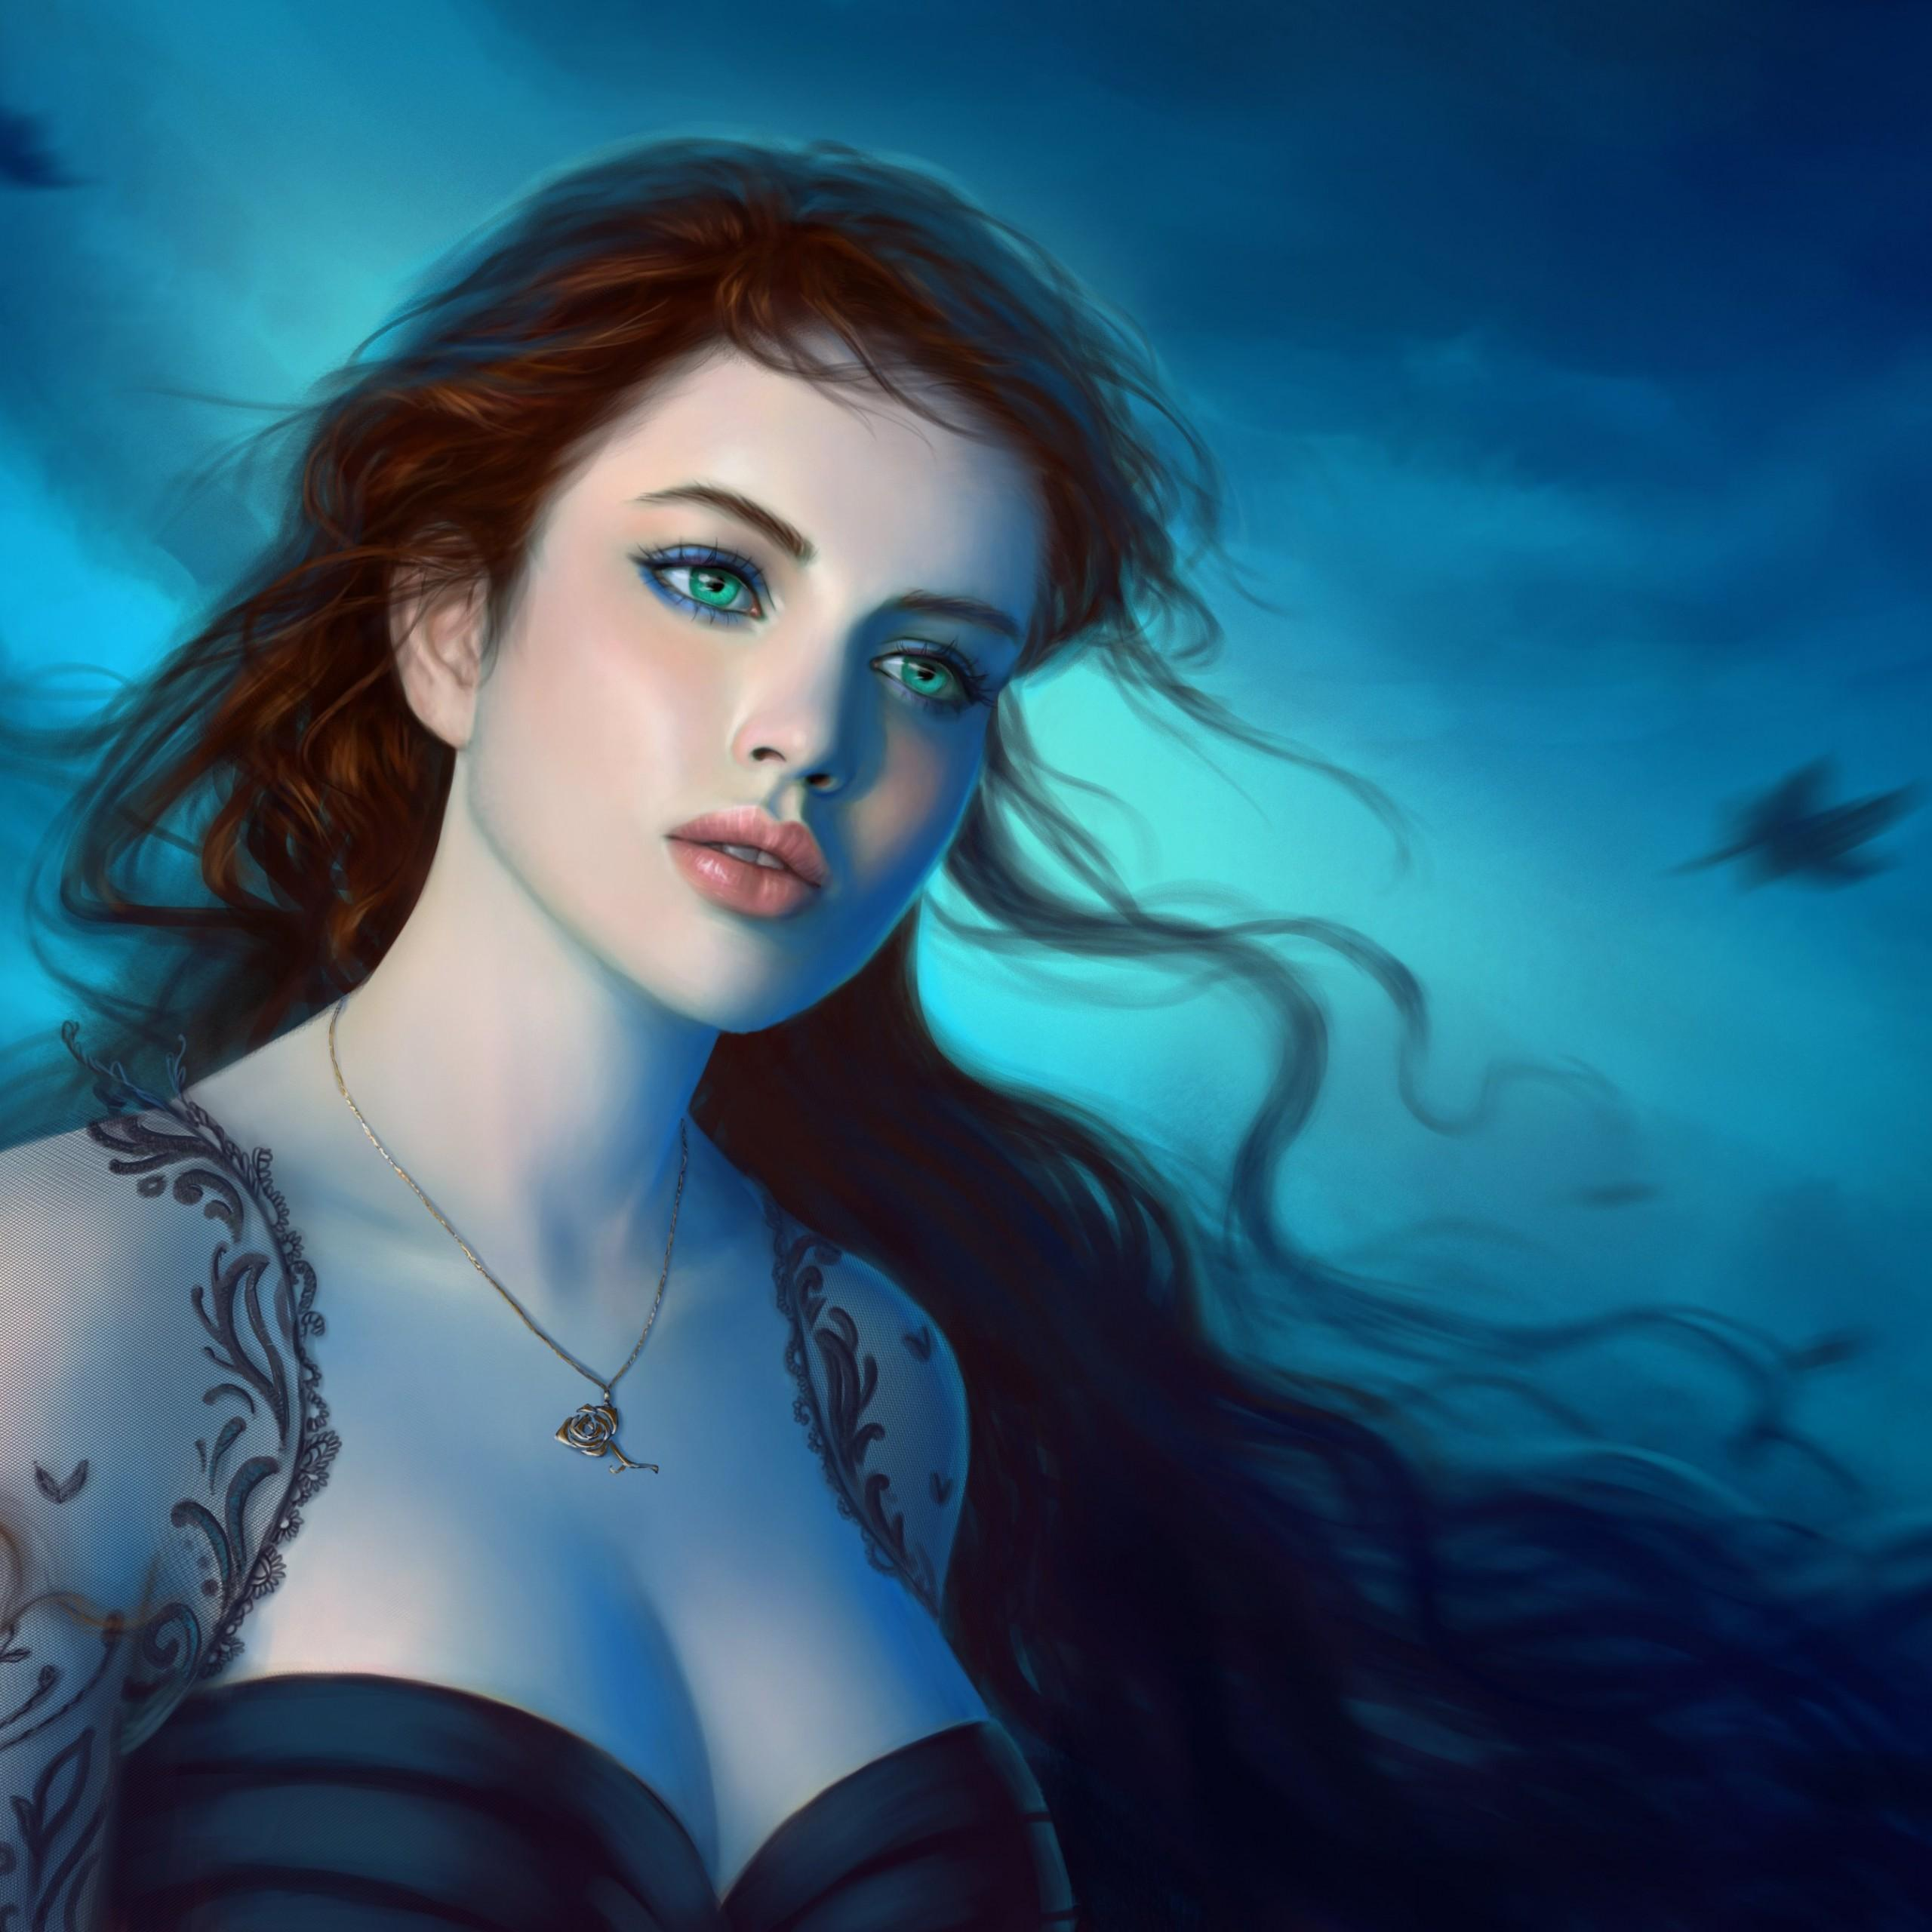 Gorgeous Fantasy Girl Wallpapers